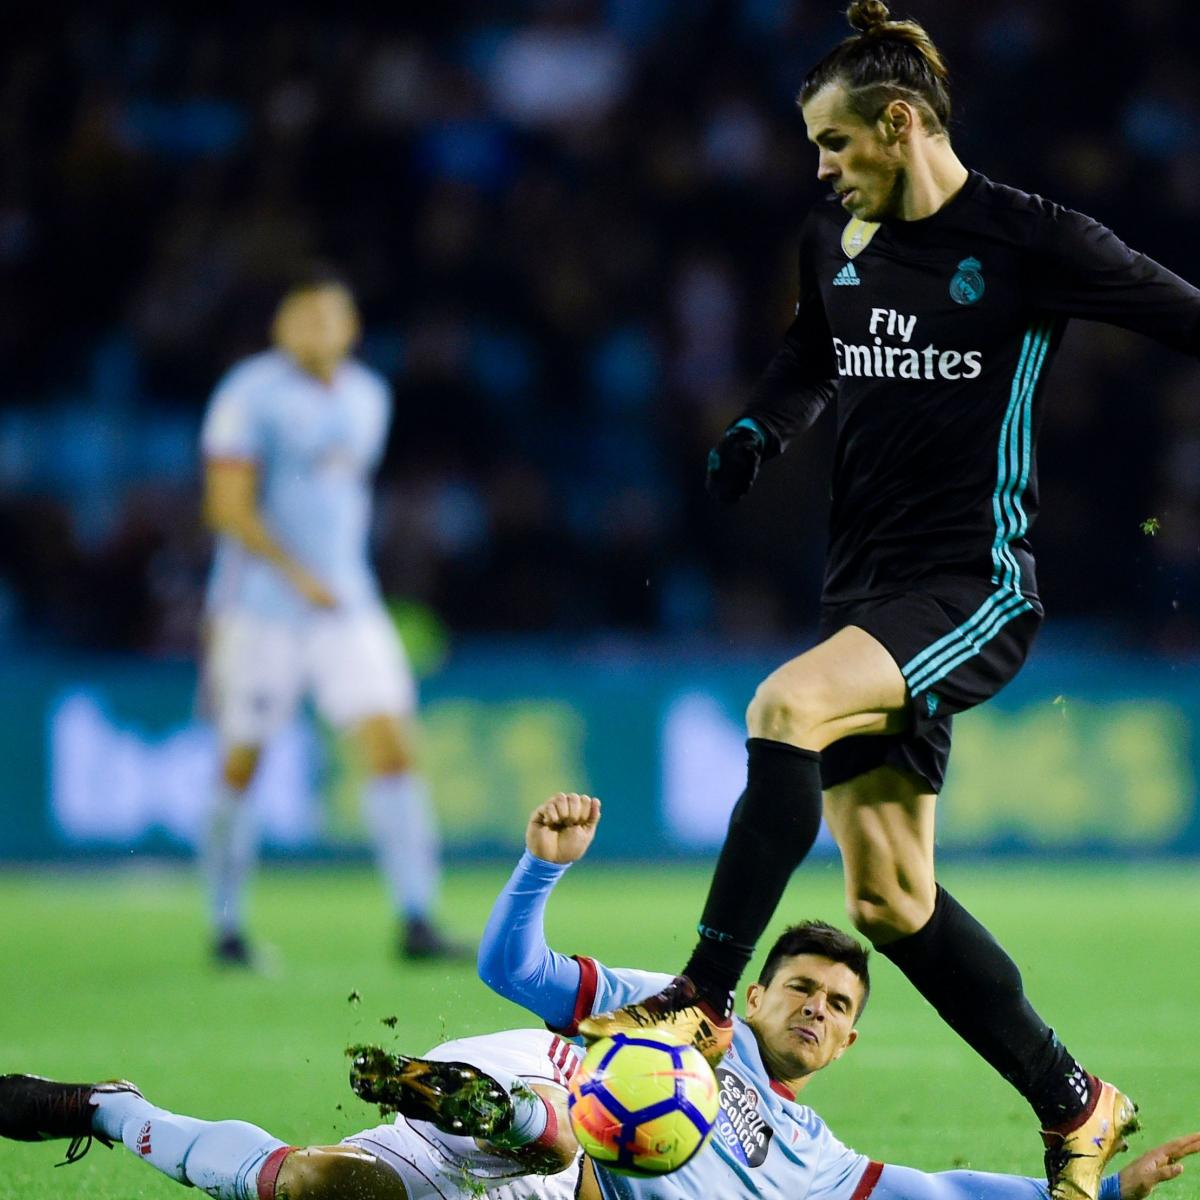 Barcelona Vs Celta Vigo In Youtube: Gareth Bale's 2 Goals Help Real Madrid Earn Draw Vs. Celta